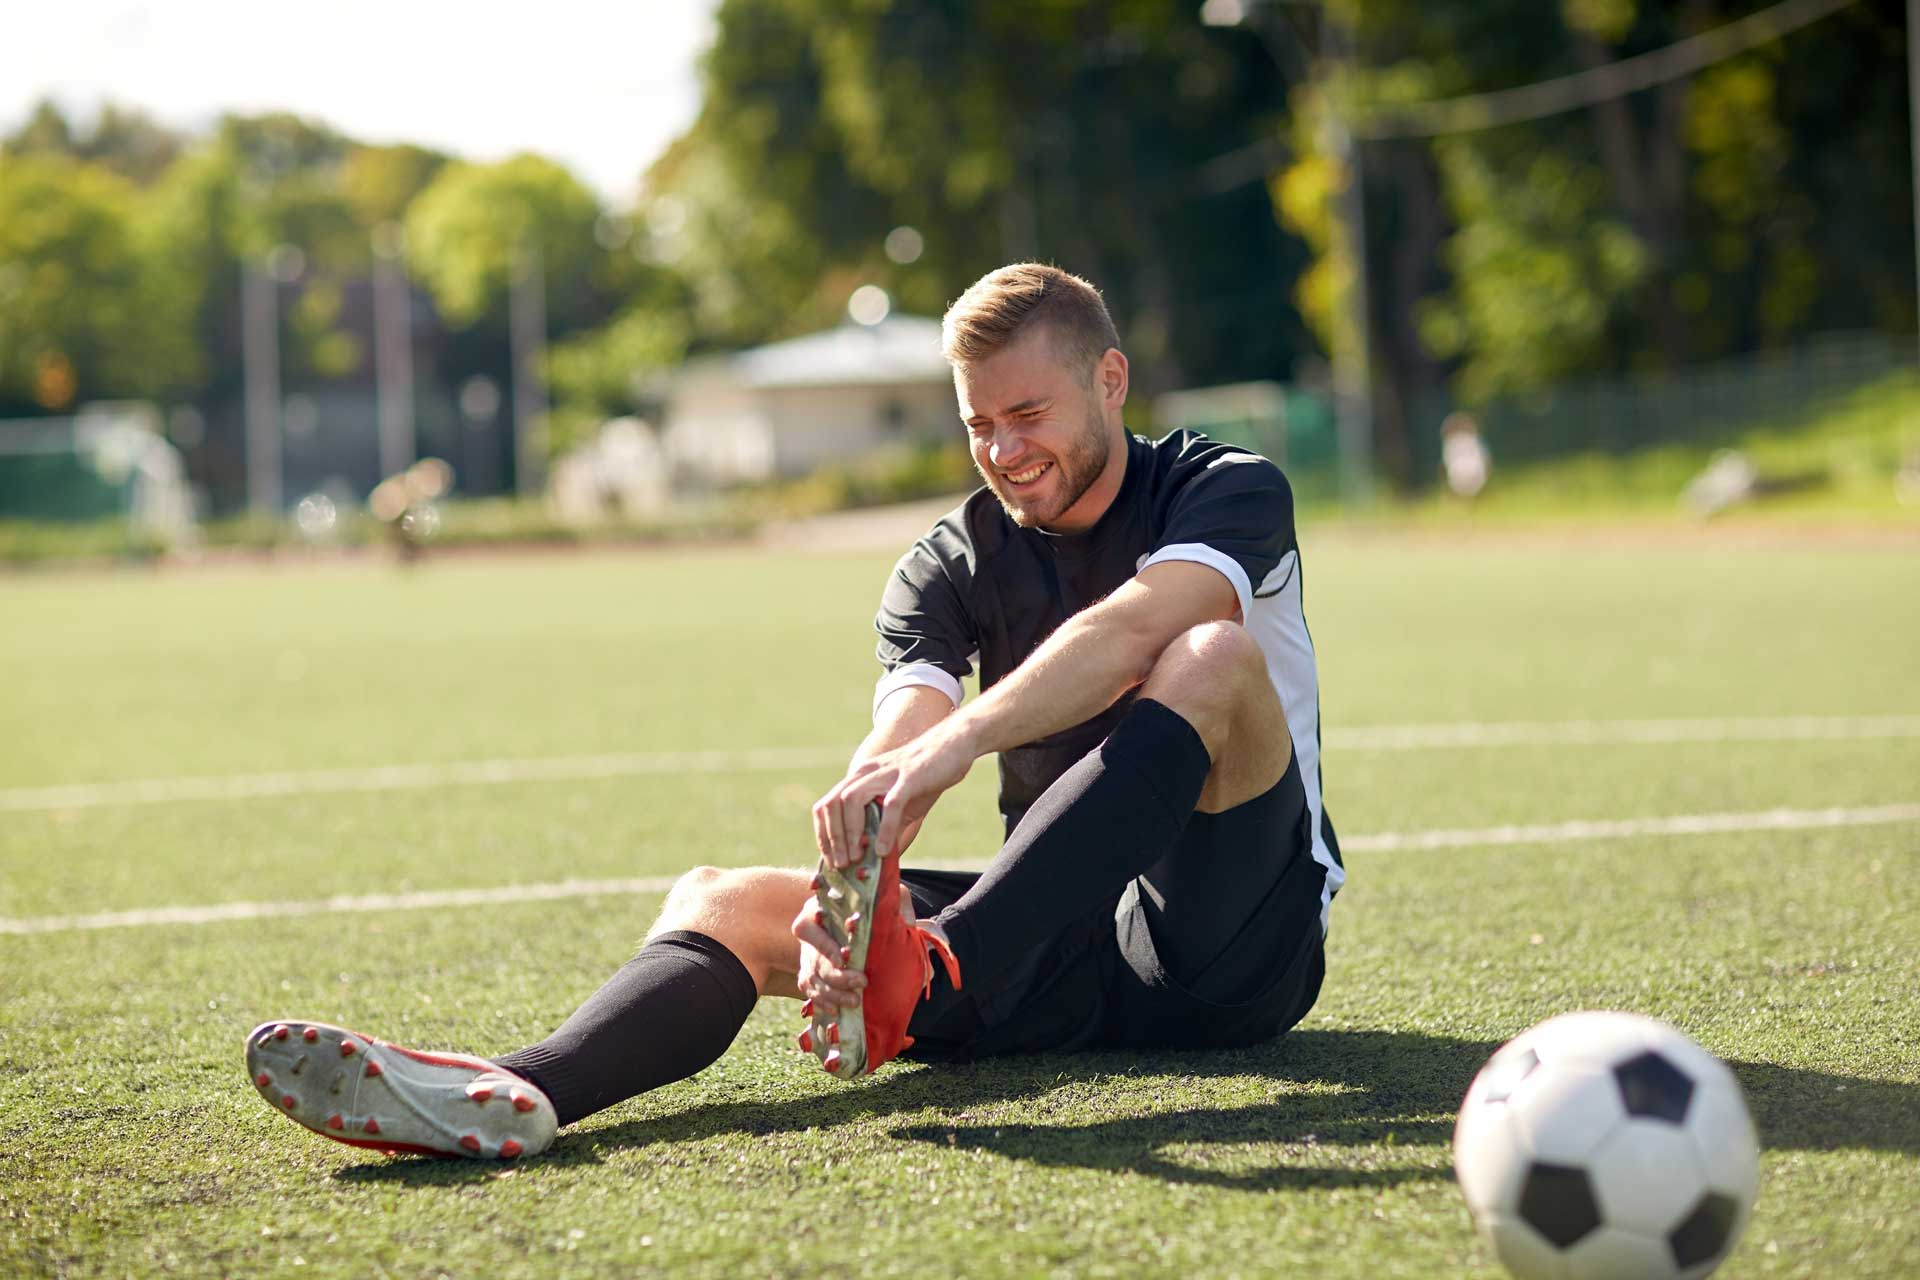 turf toe injury care Loudoun Foot Care Shuman Podiatry & Sports Medicine